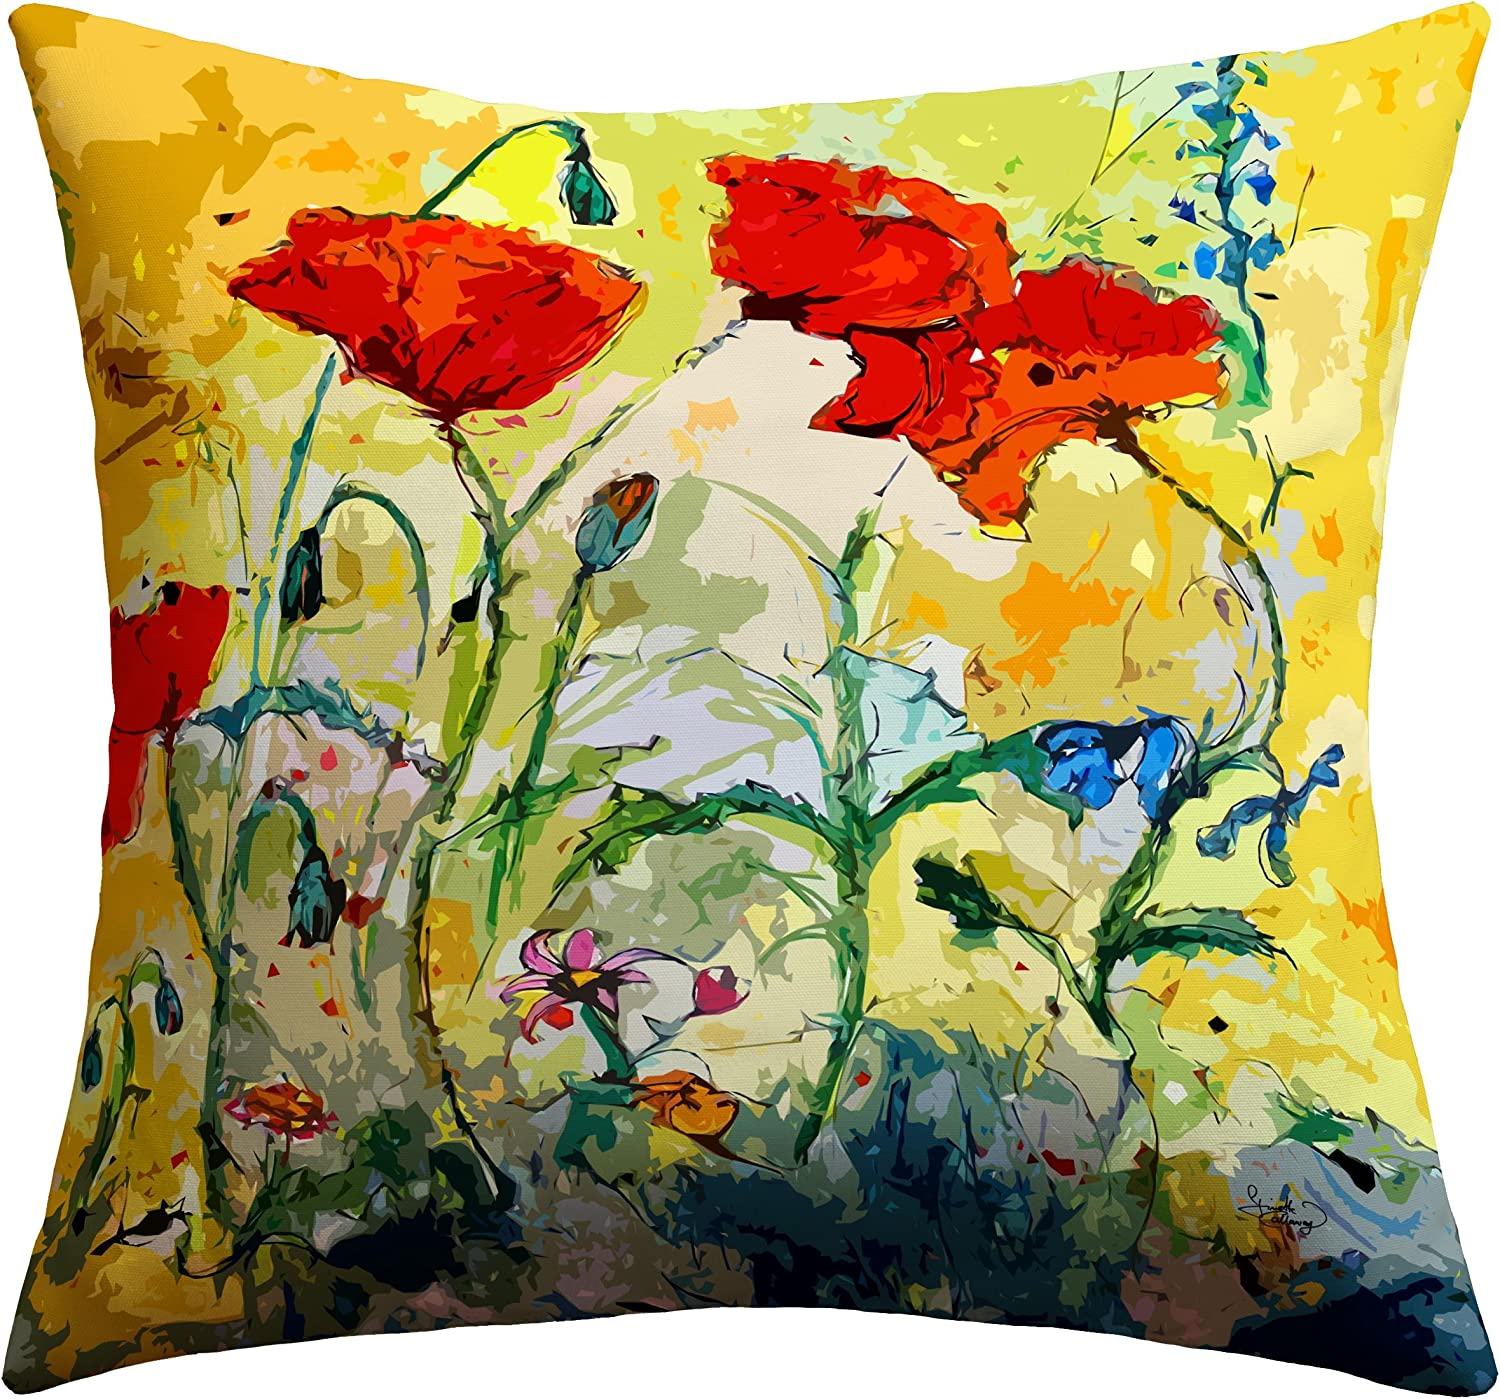 Deny Designs Ginette Fine Art Poppies Provence Outdoor Throw Pillow, 16 x 16